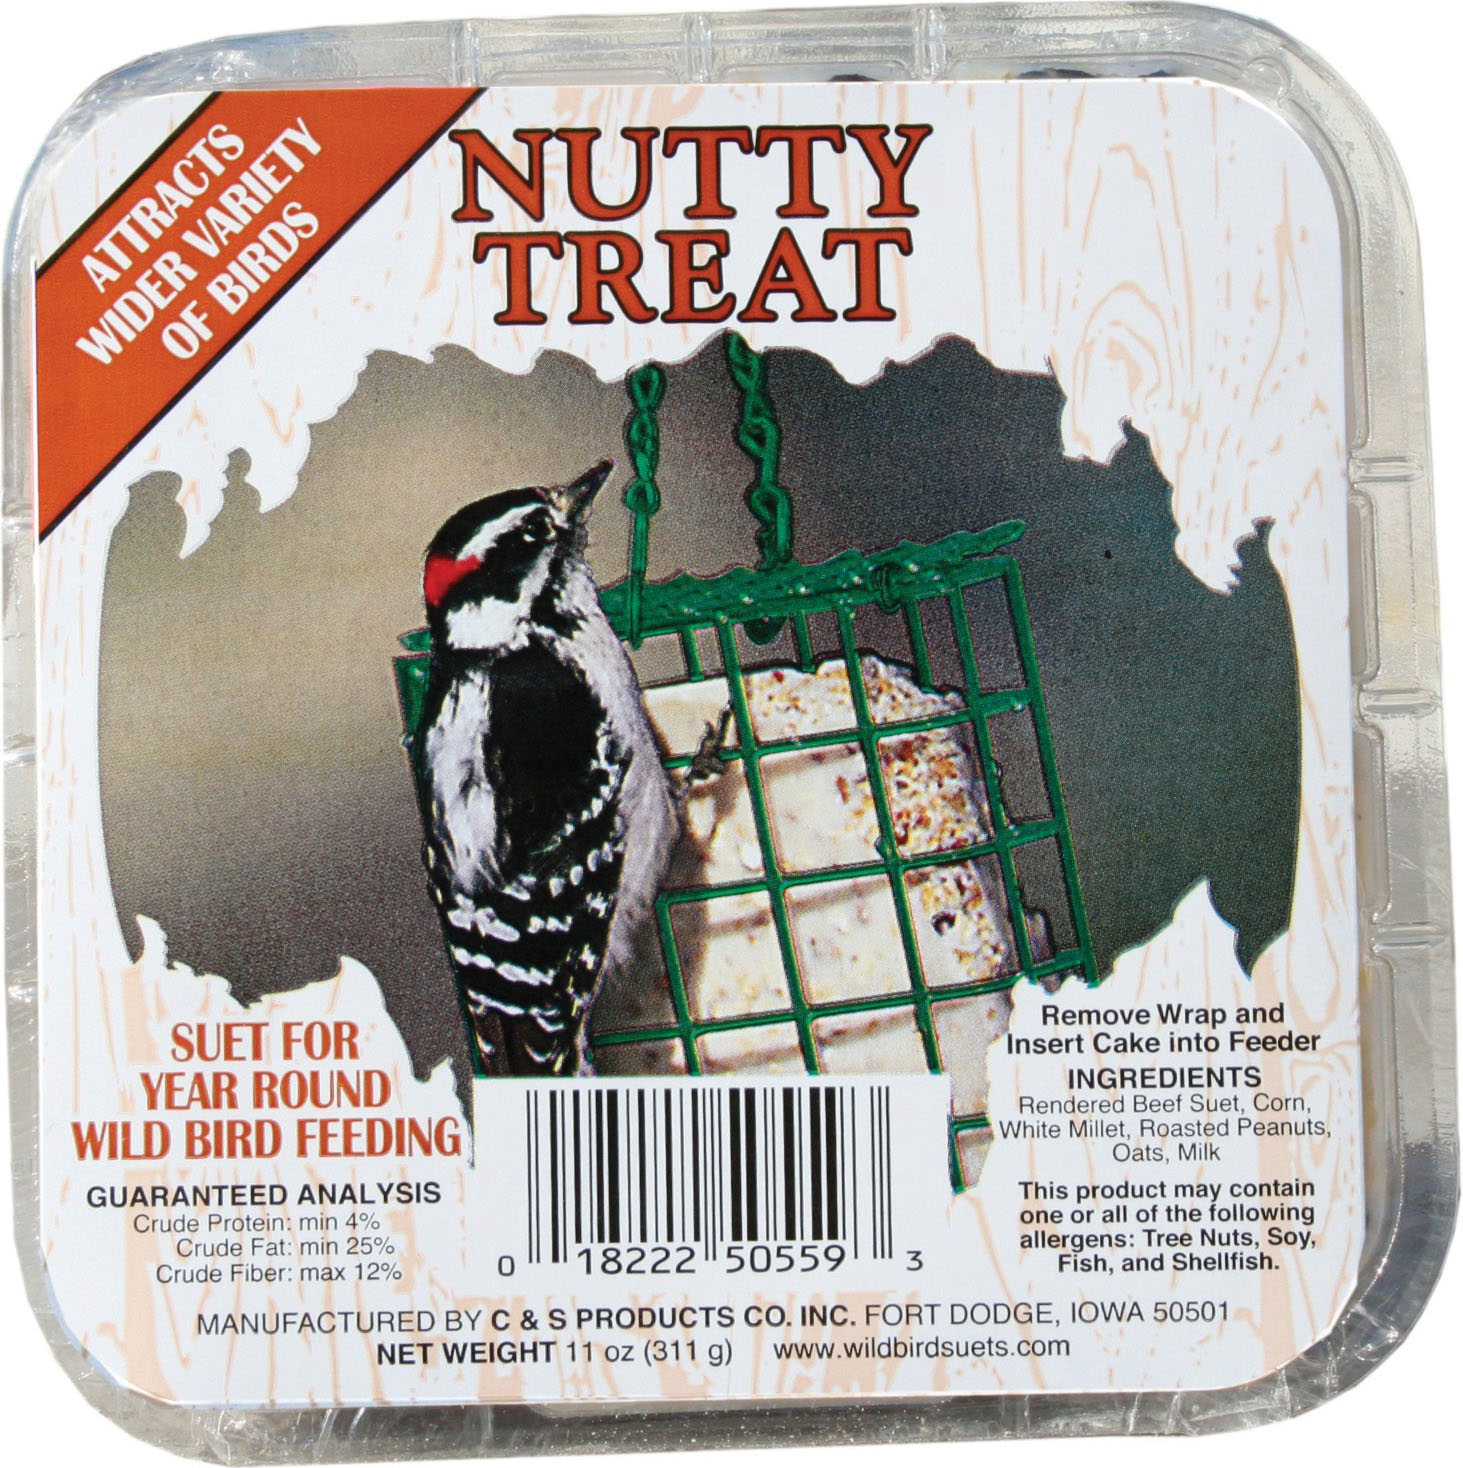 C And S Products Co Inc P-Nutty Treat Picture Label 11 Ounce (Case of 12 )